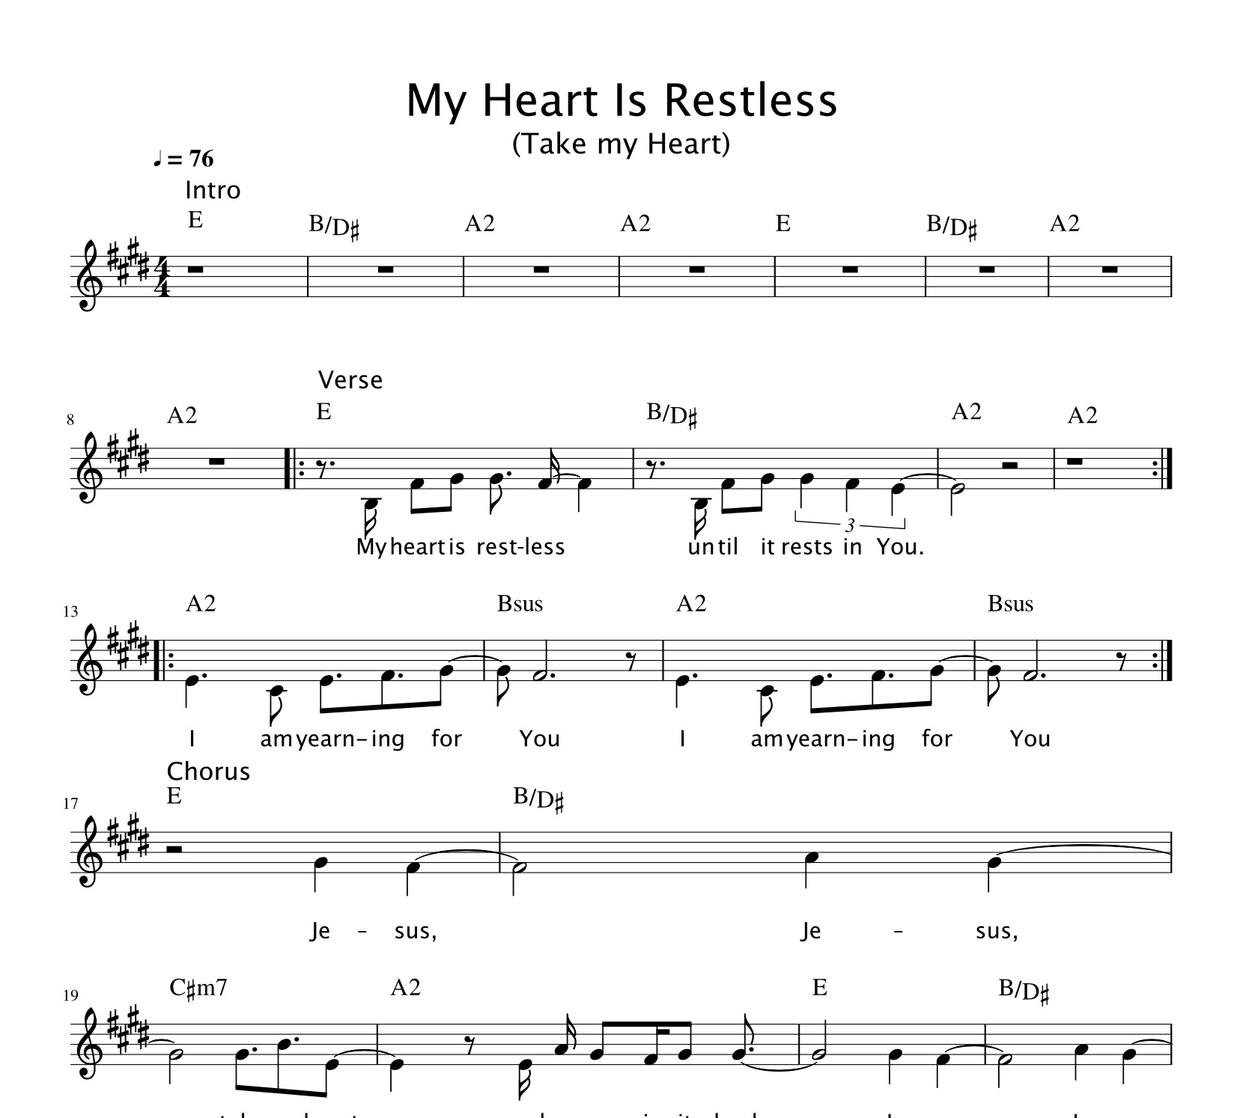 My Heart Is Restless (Take My Heart) (Chord Sheet)